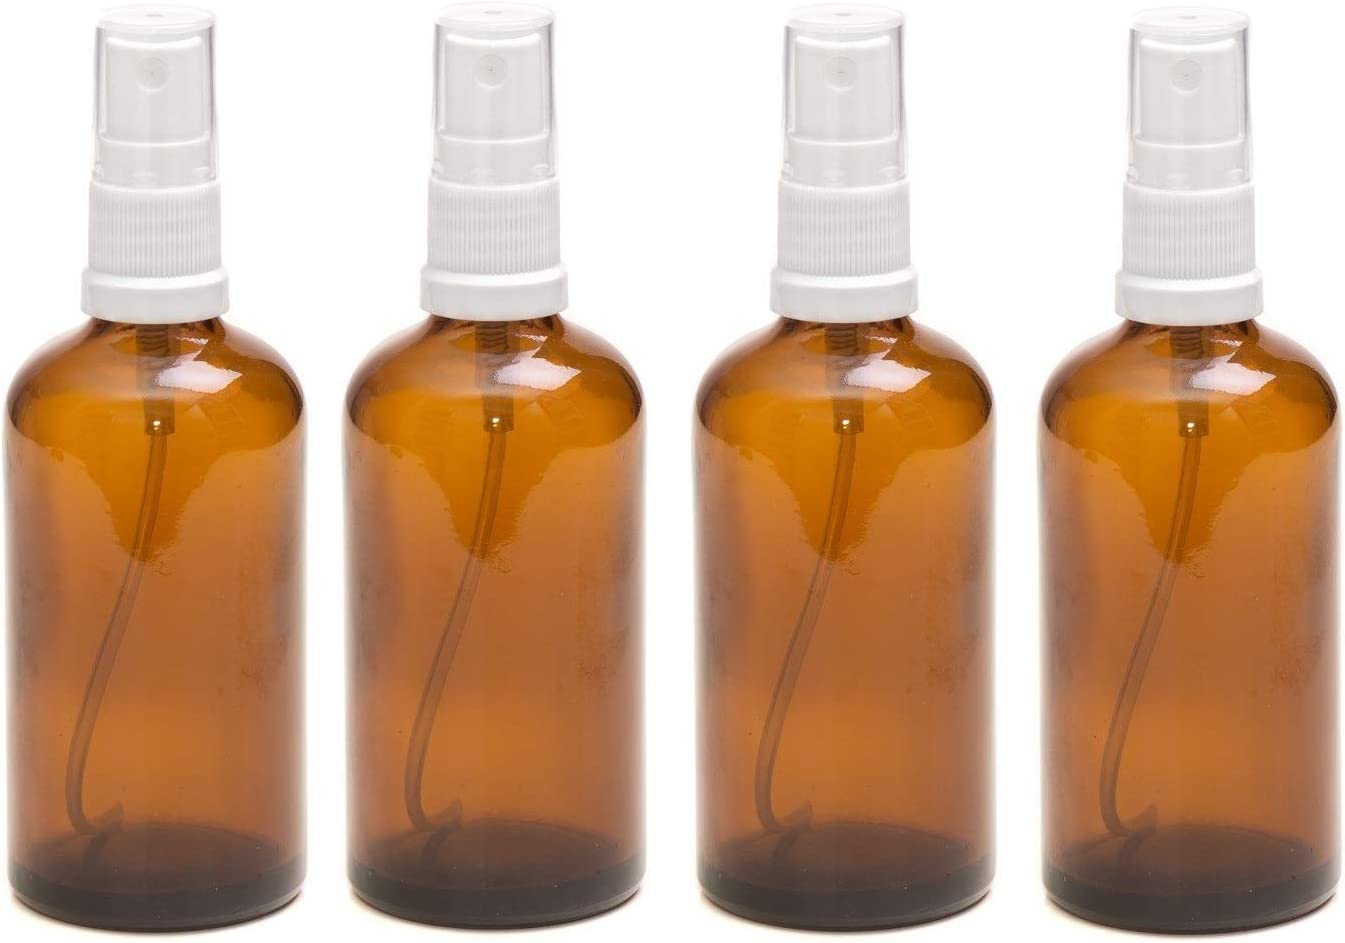 PACK of 4 - 100ml AMBER Glass Bottles with White ATOMISER Sprays. Essential Oil / Aromatherapy Use